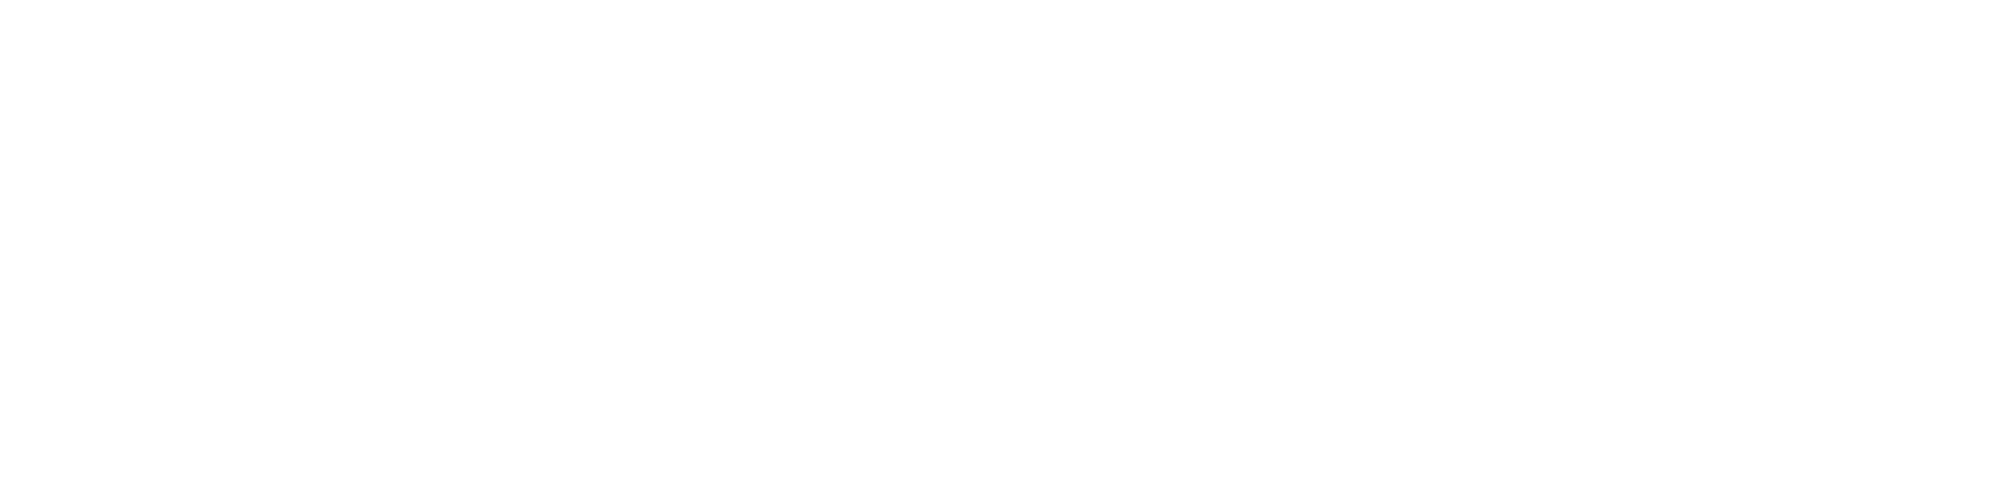 group1white.png